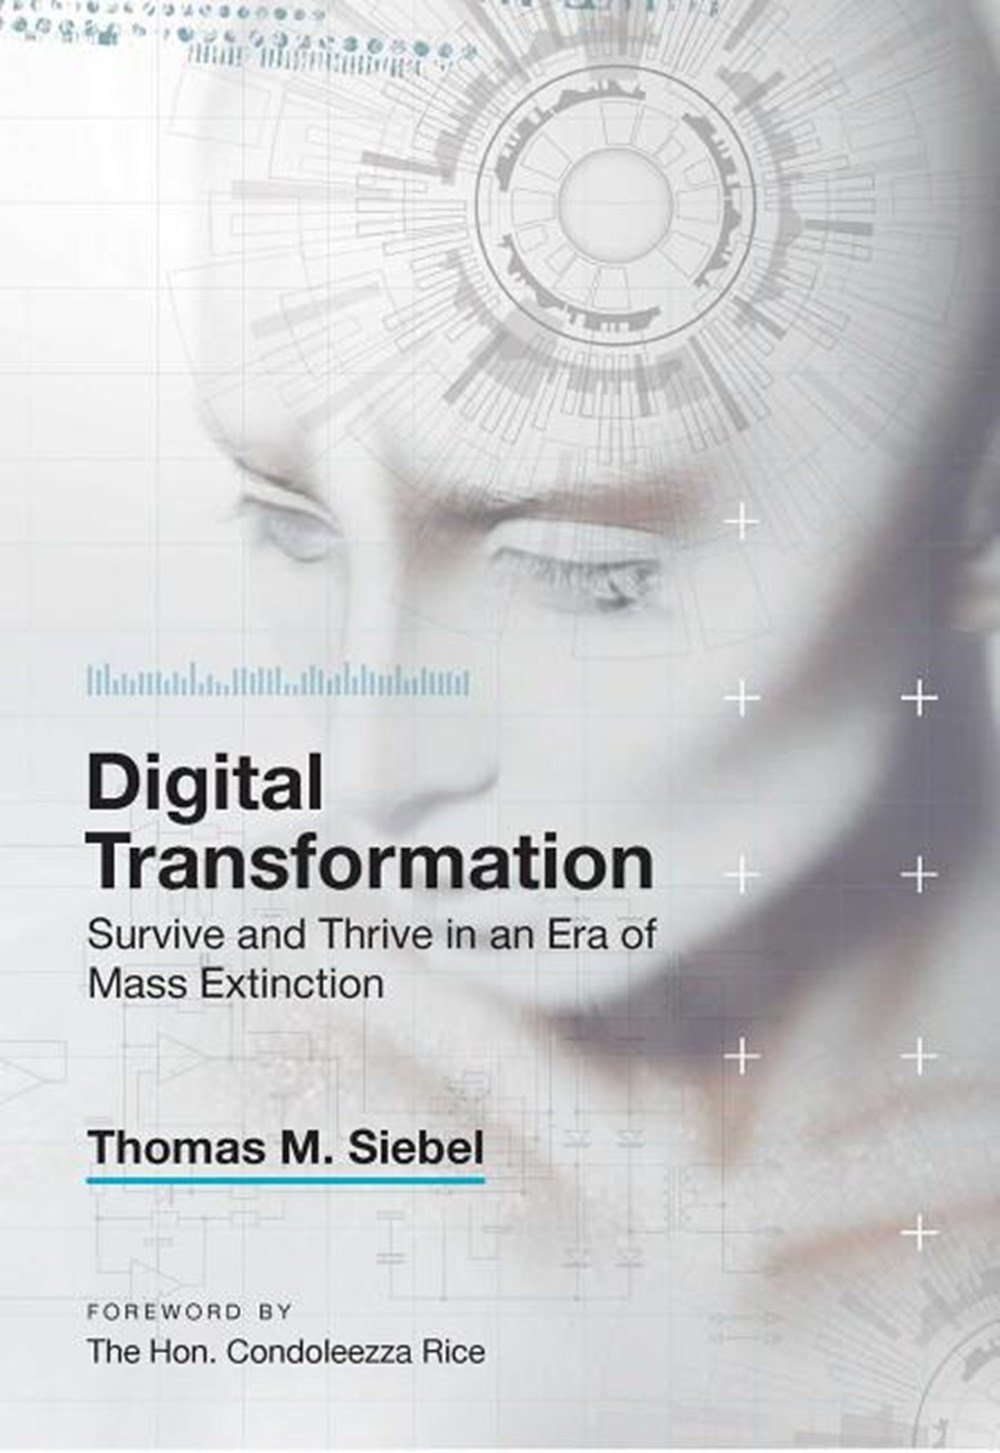 Digital Transformation Survive and Thrive in an Era of Mass Extinction